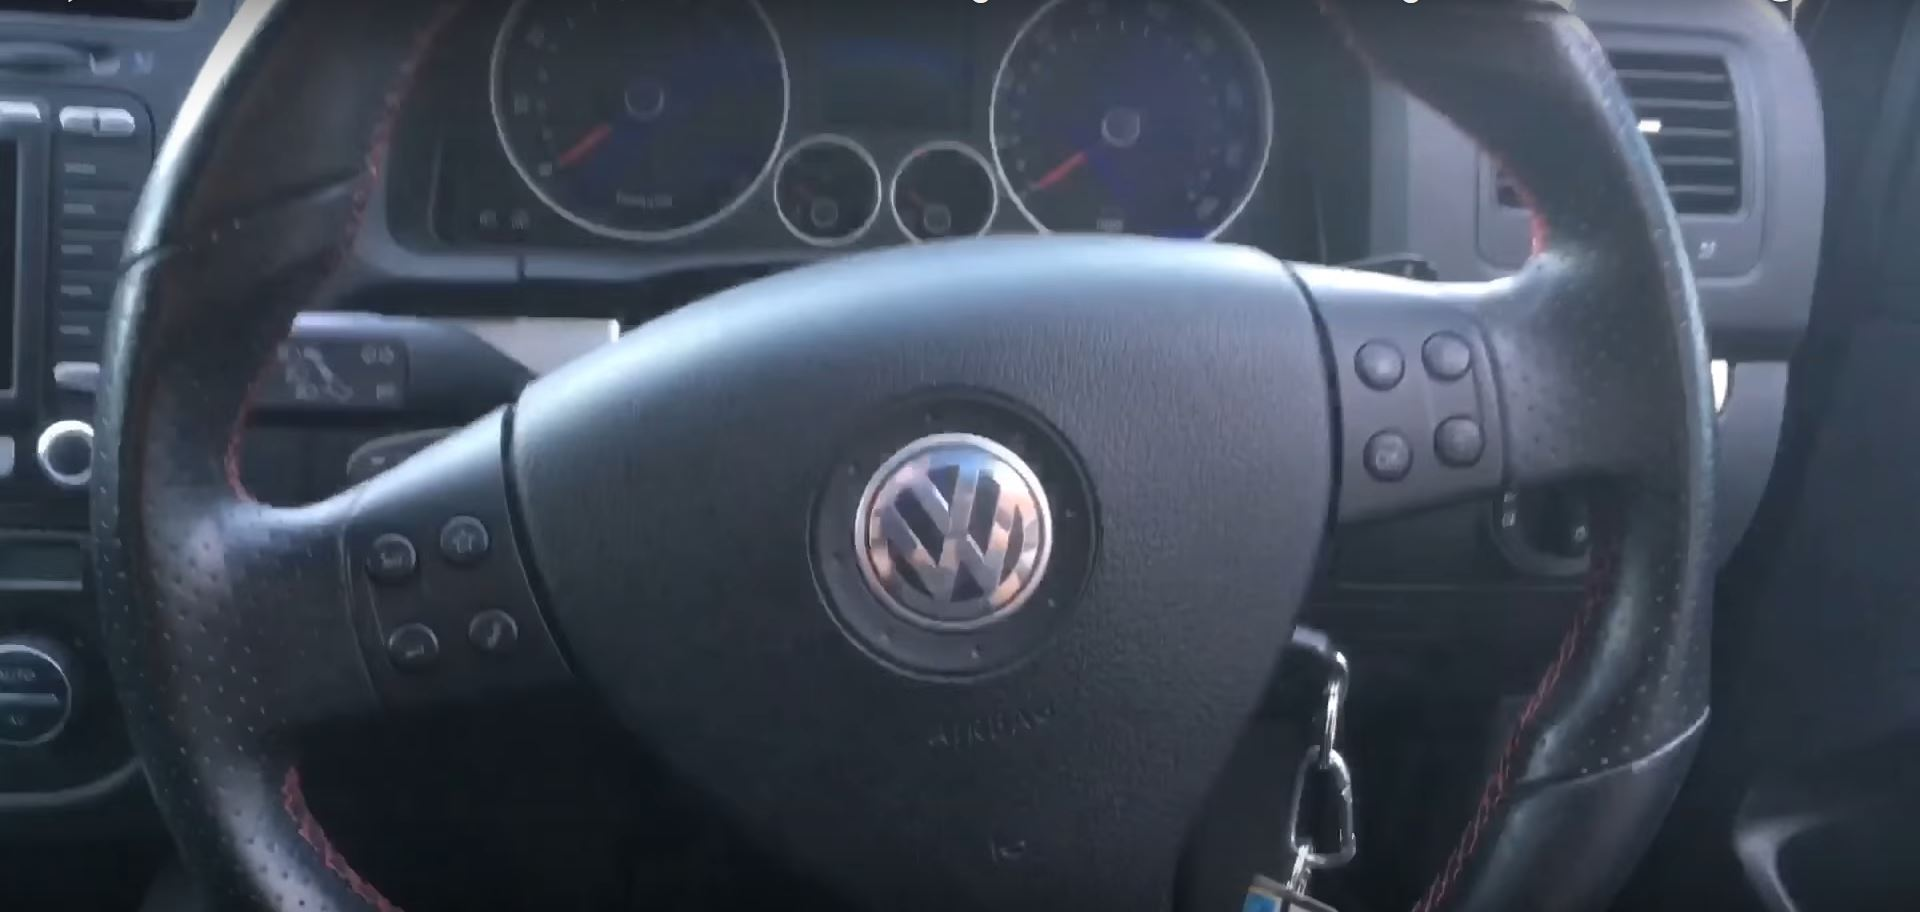 Golf 5 GTI Flat-Bottom Steering Wheel and Color MFD